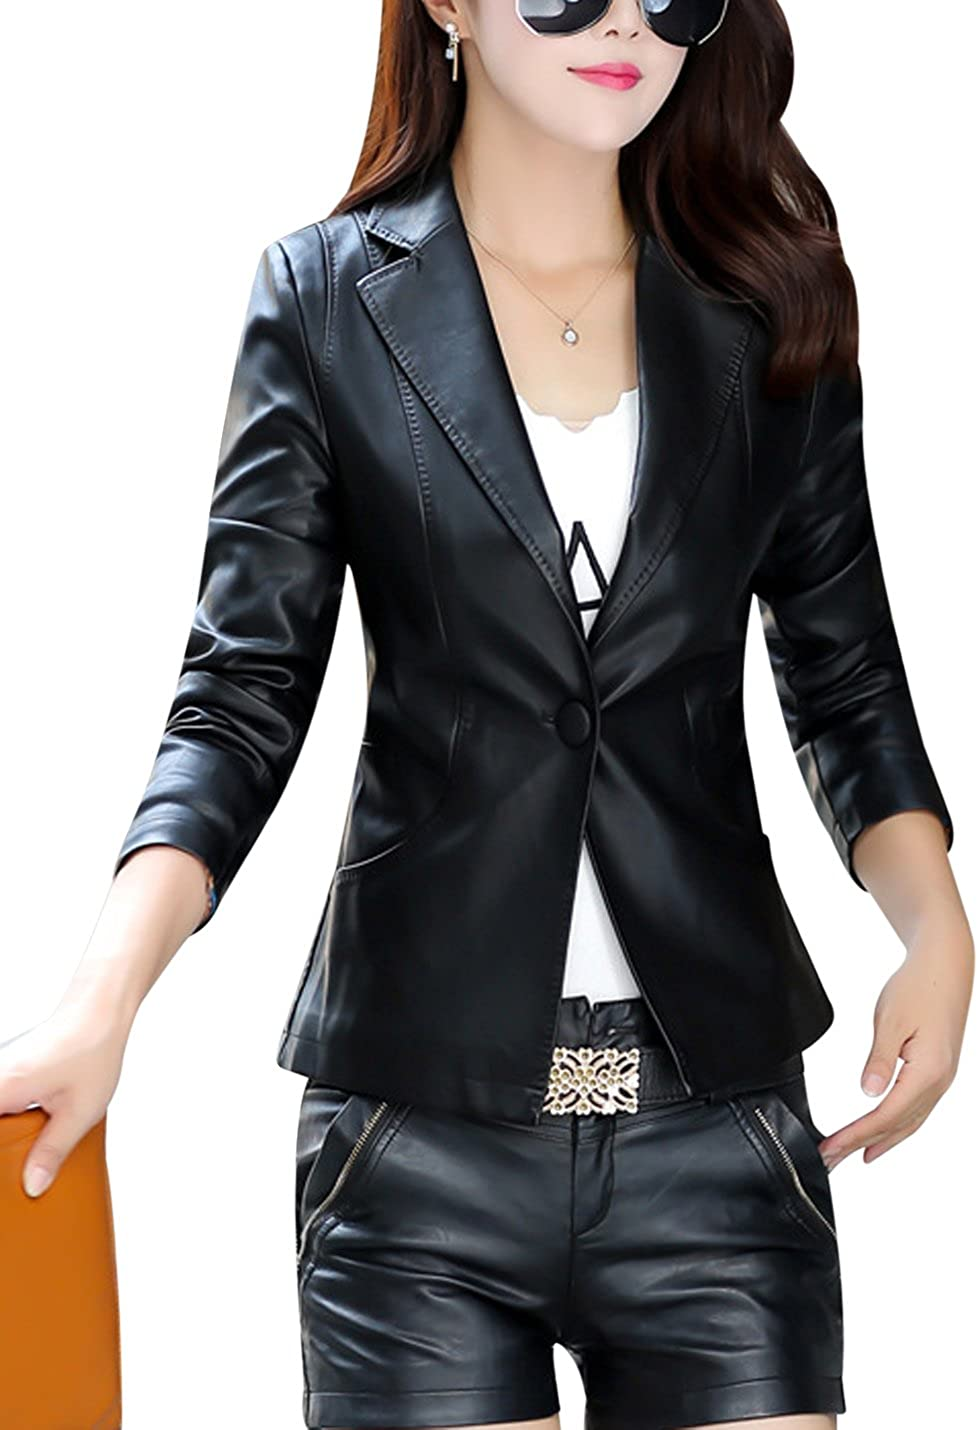 Tanming Women's One Button Faux Leather Suit Blazer Jacket Outerwear